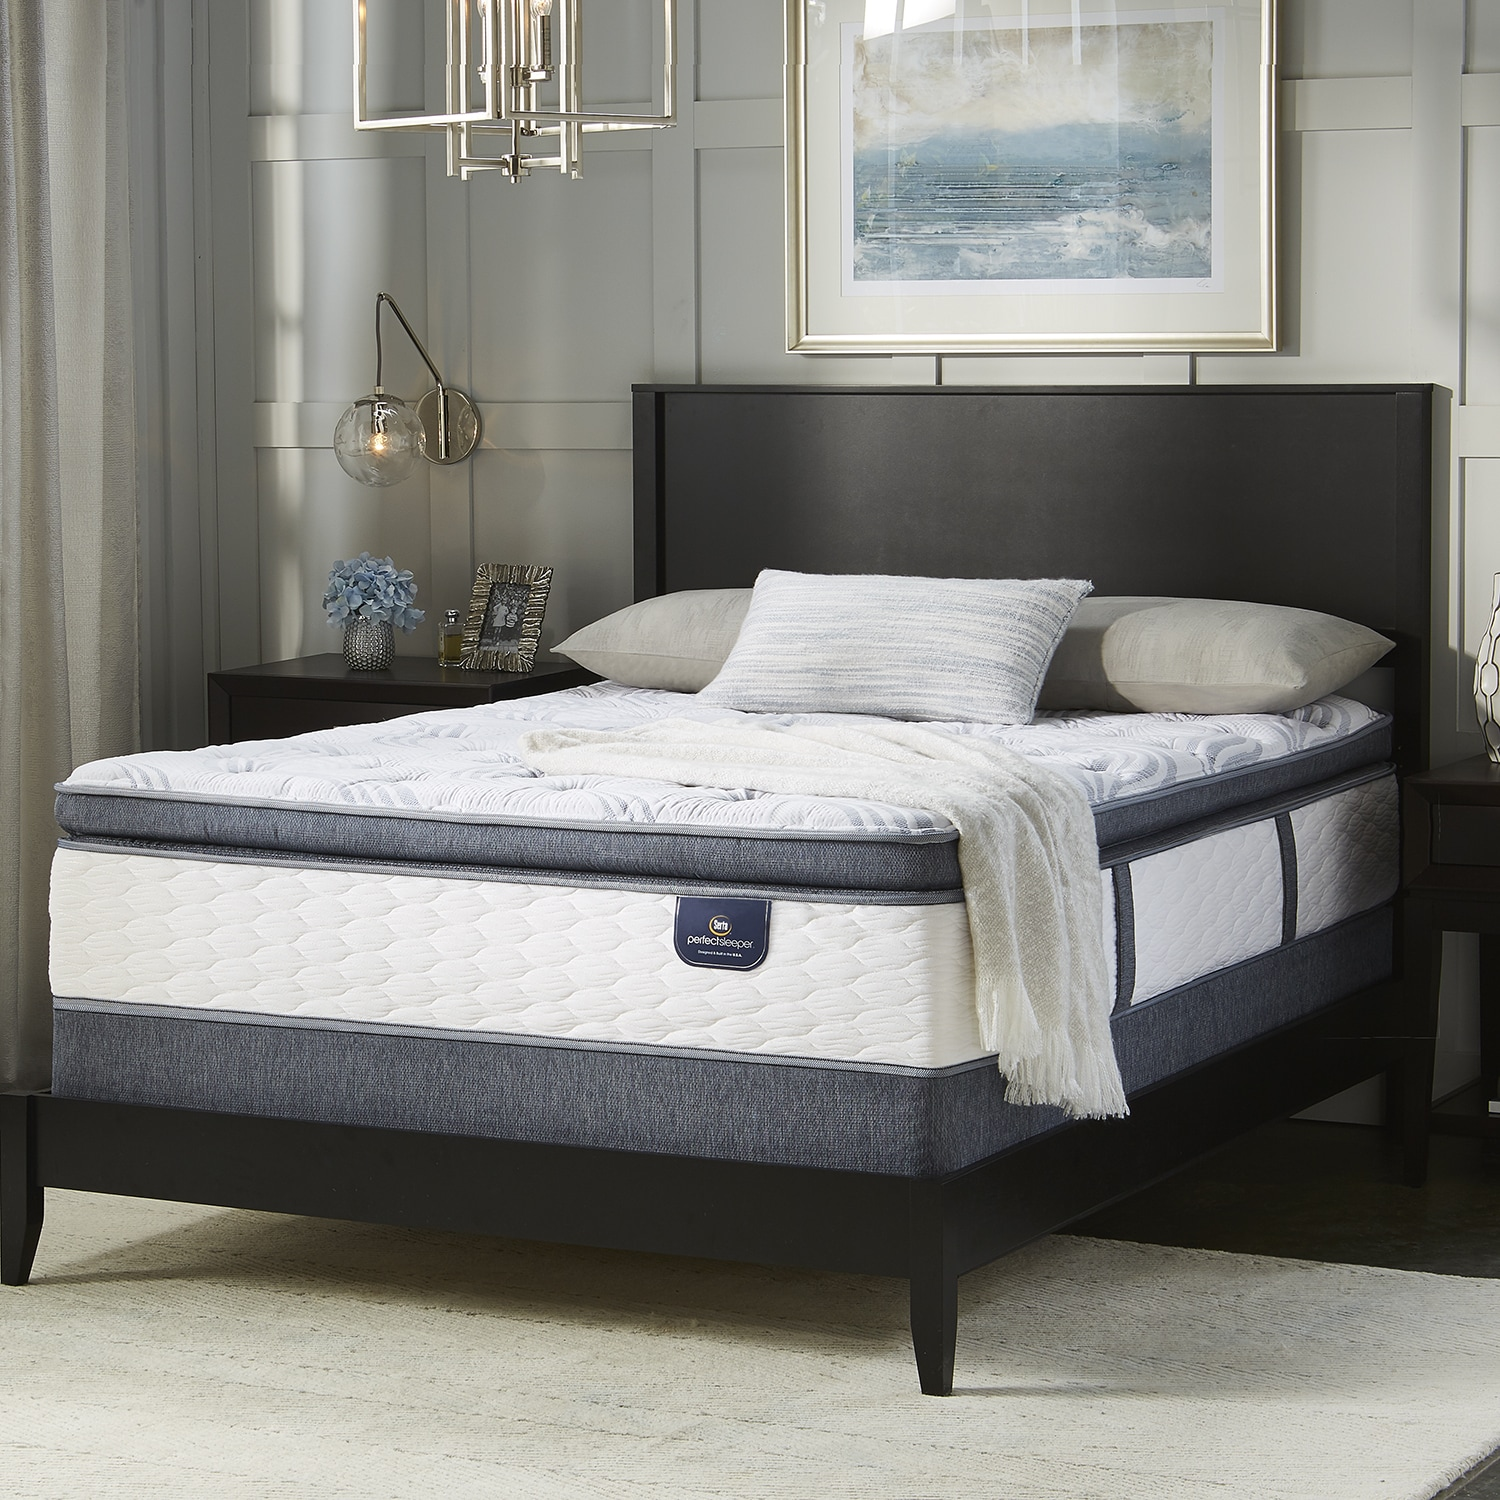 Buy Queen Size Mattresses Online At Overstock Our Best Bedroom